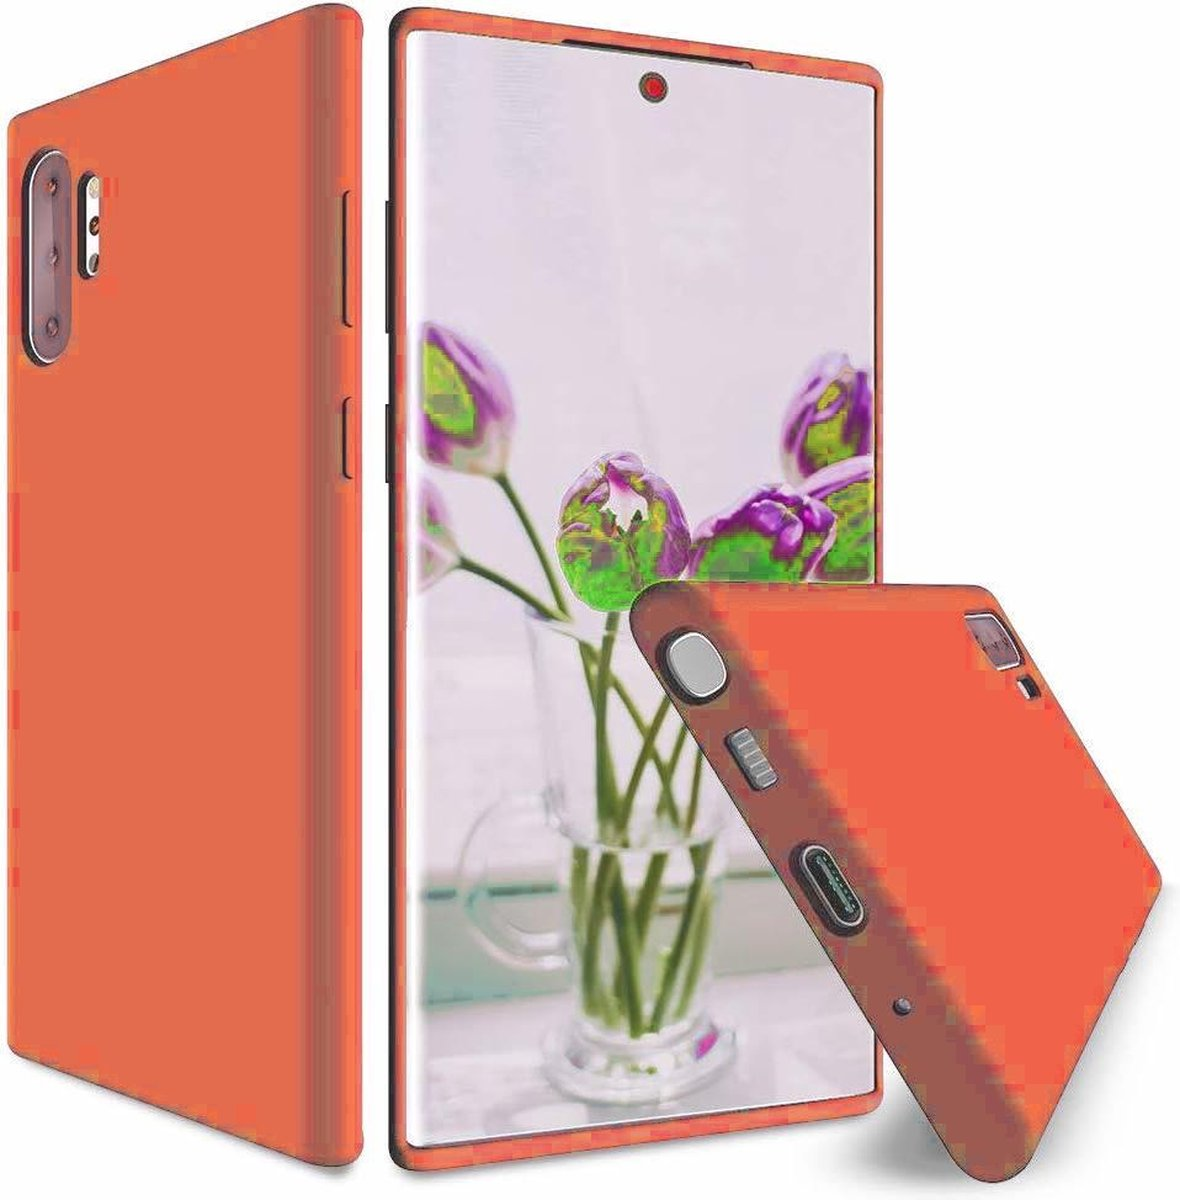 Afbeelding van product Shieldcase Silicone case Samsung Galaxy Note 10 Plus - oranje